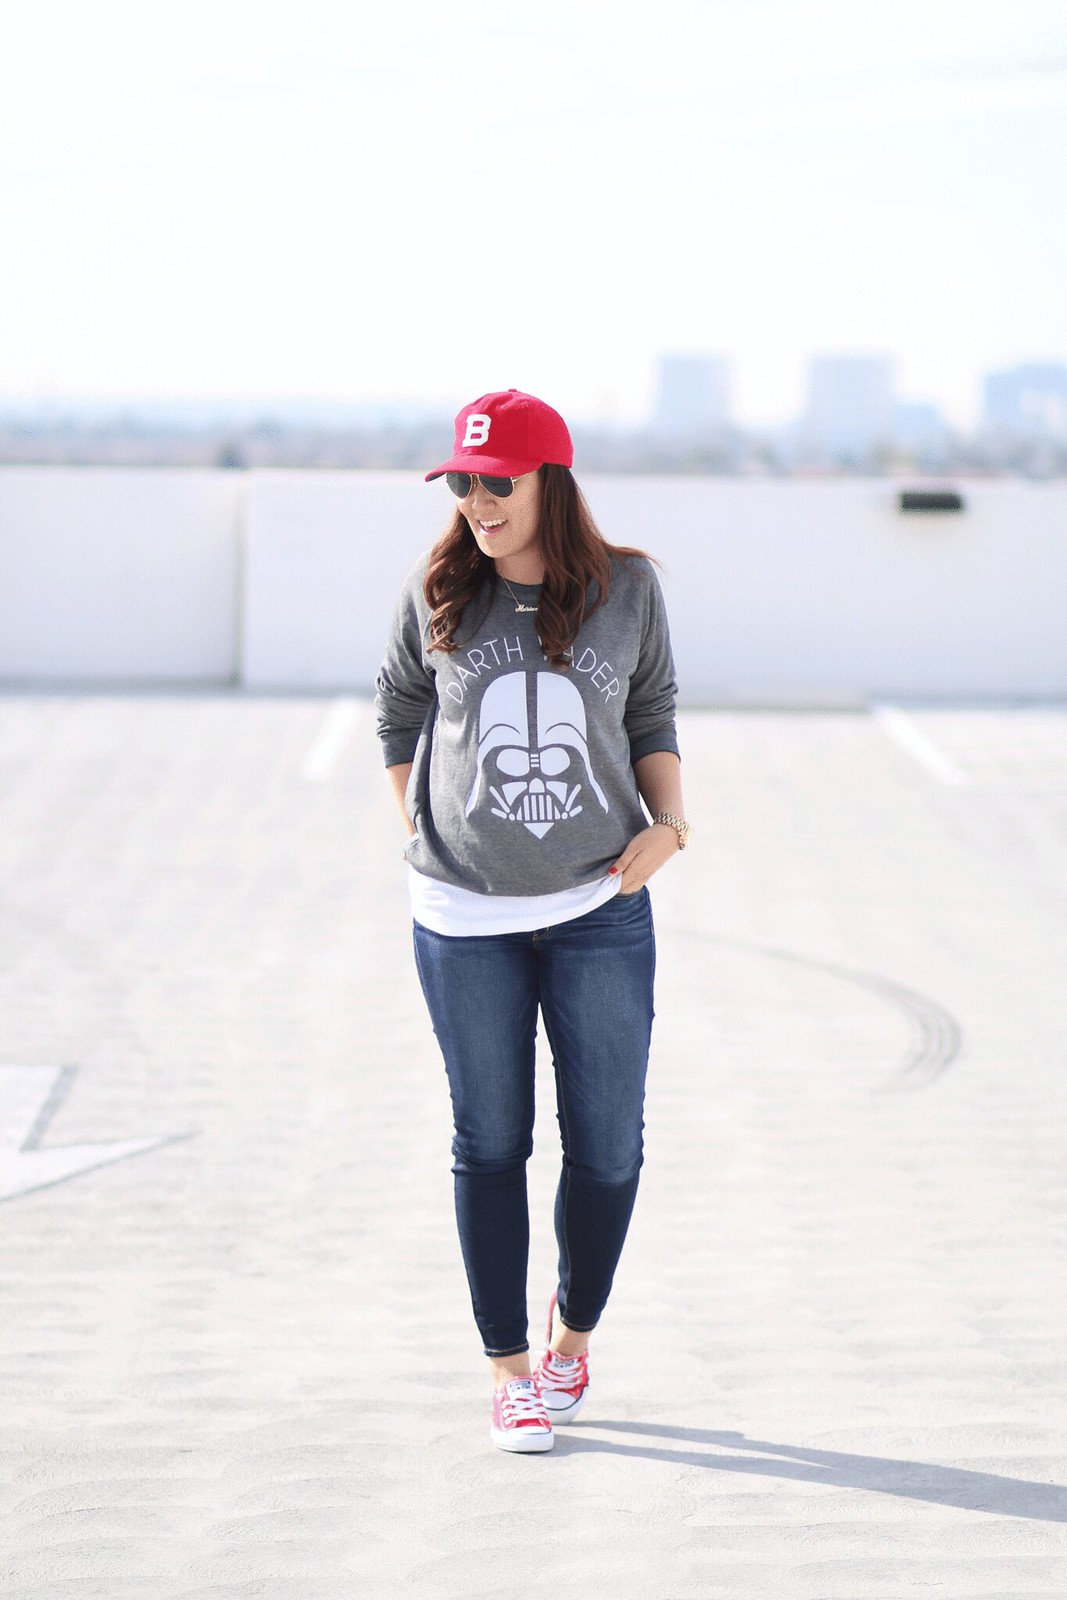 simplyxclassic, miriam gin, star wars, darth vader, sweatshirt, jcrew, crewcuts, old navy, toddler fashion, blogger, lifestyle, how to wear red, chucks, converse, orange county, mommy blog